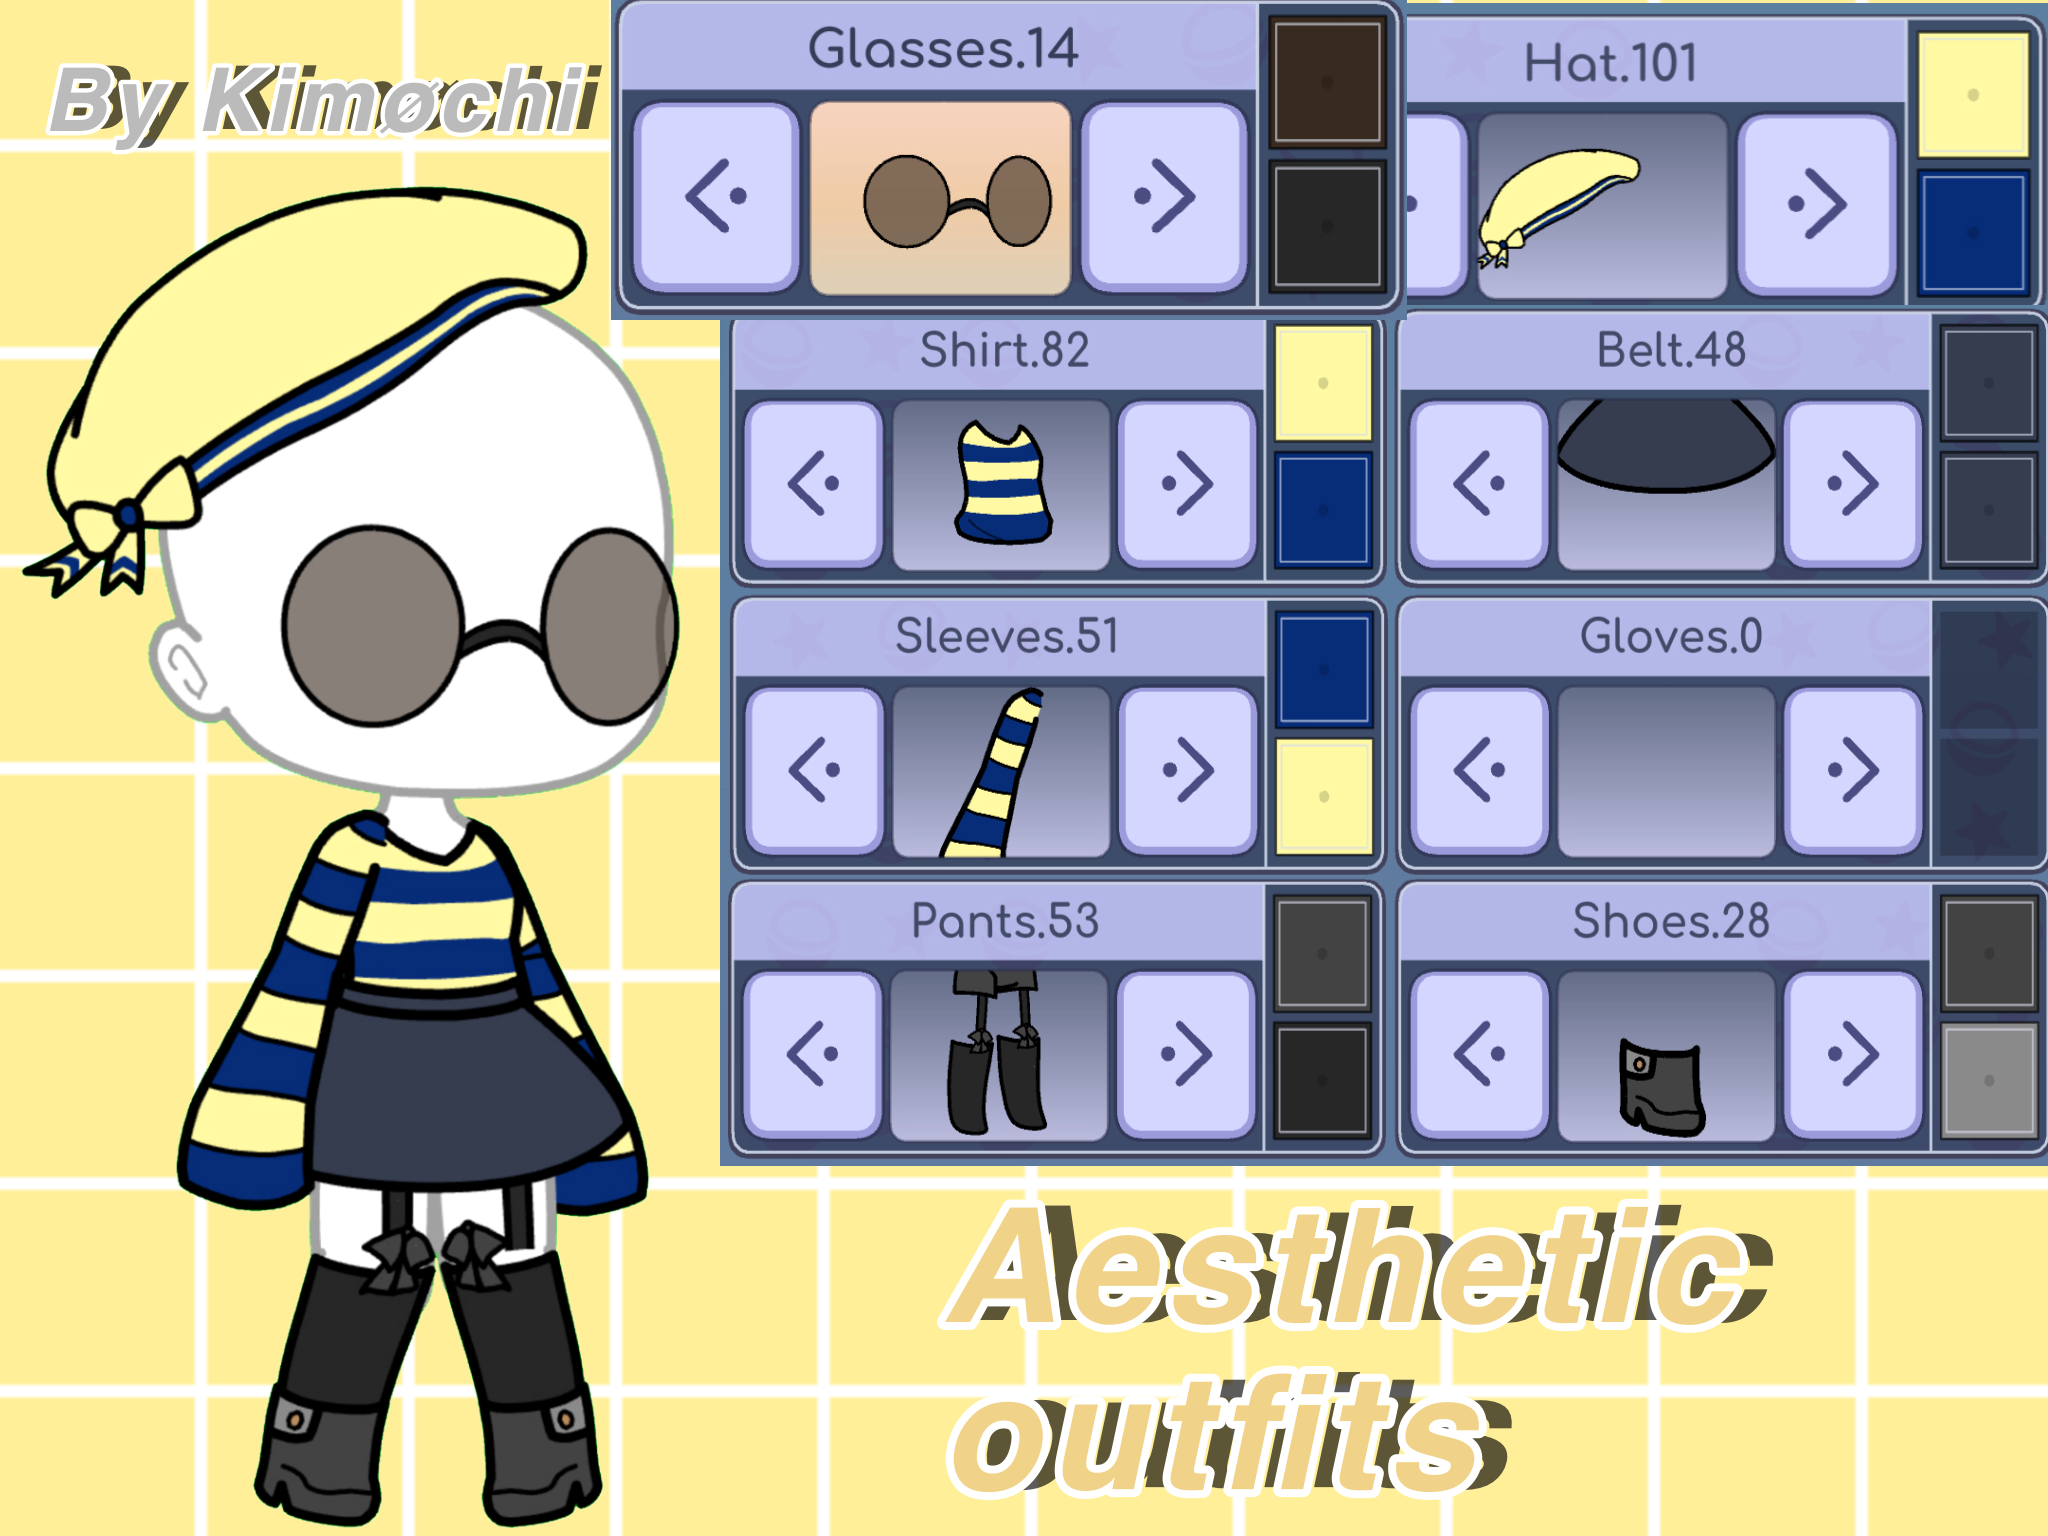 Aesthetic Outfits 2 Character Outfits Anime Outfits Clothing Sketches